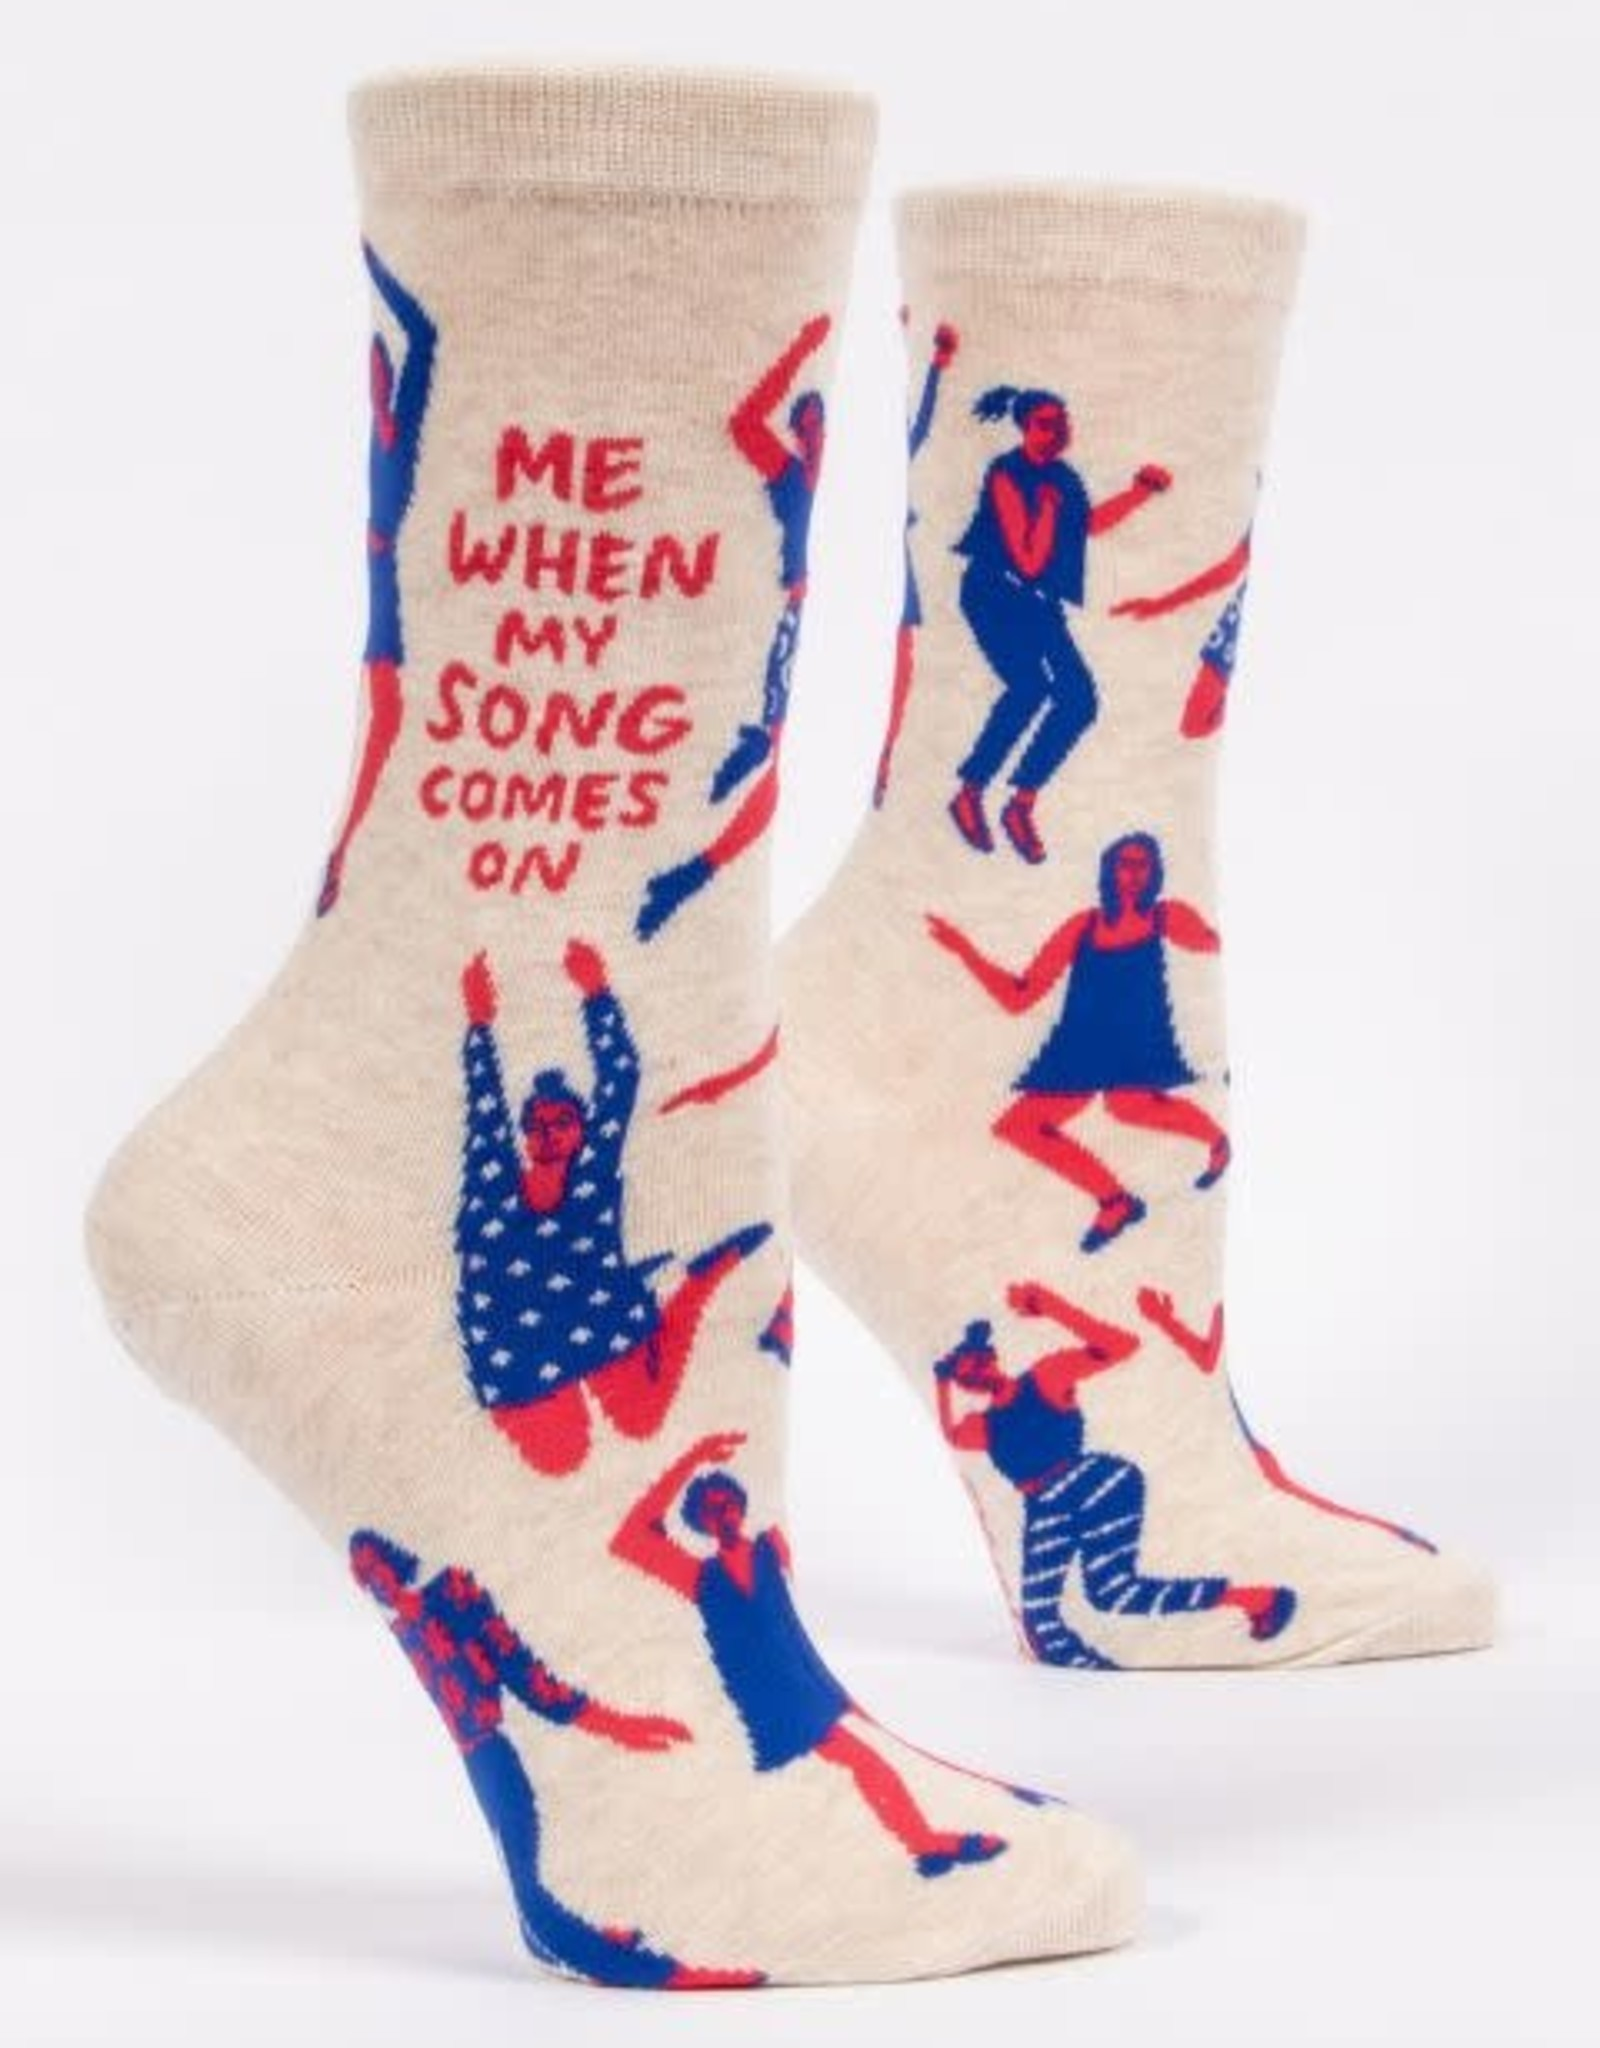 Blue Q Me When My Song Comes On - Women's Crew Socks